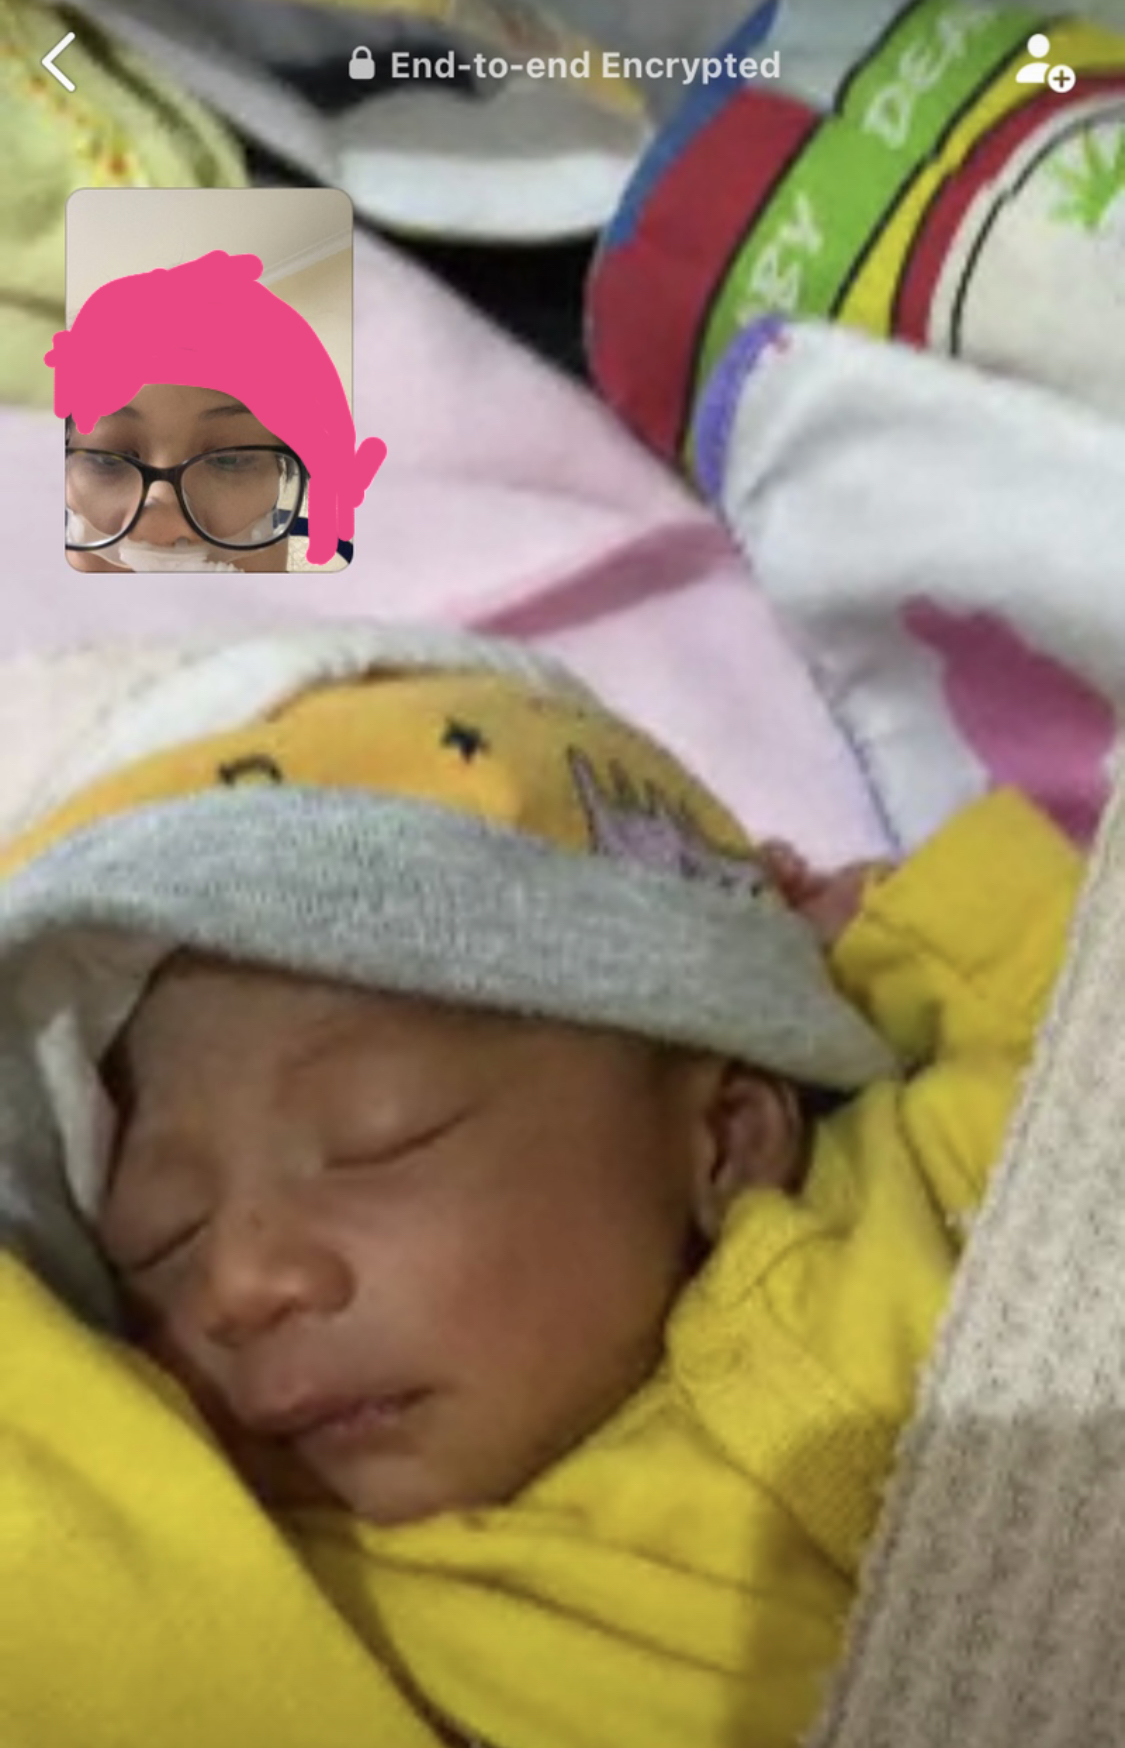 A woman appears on videocall with her newborn baby.